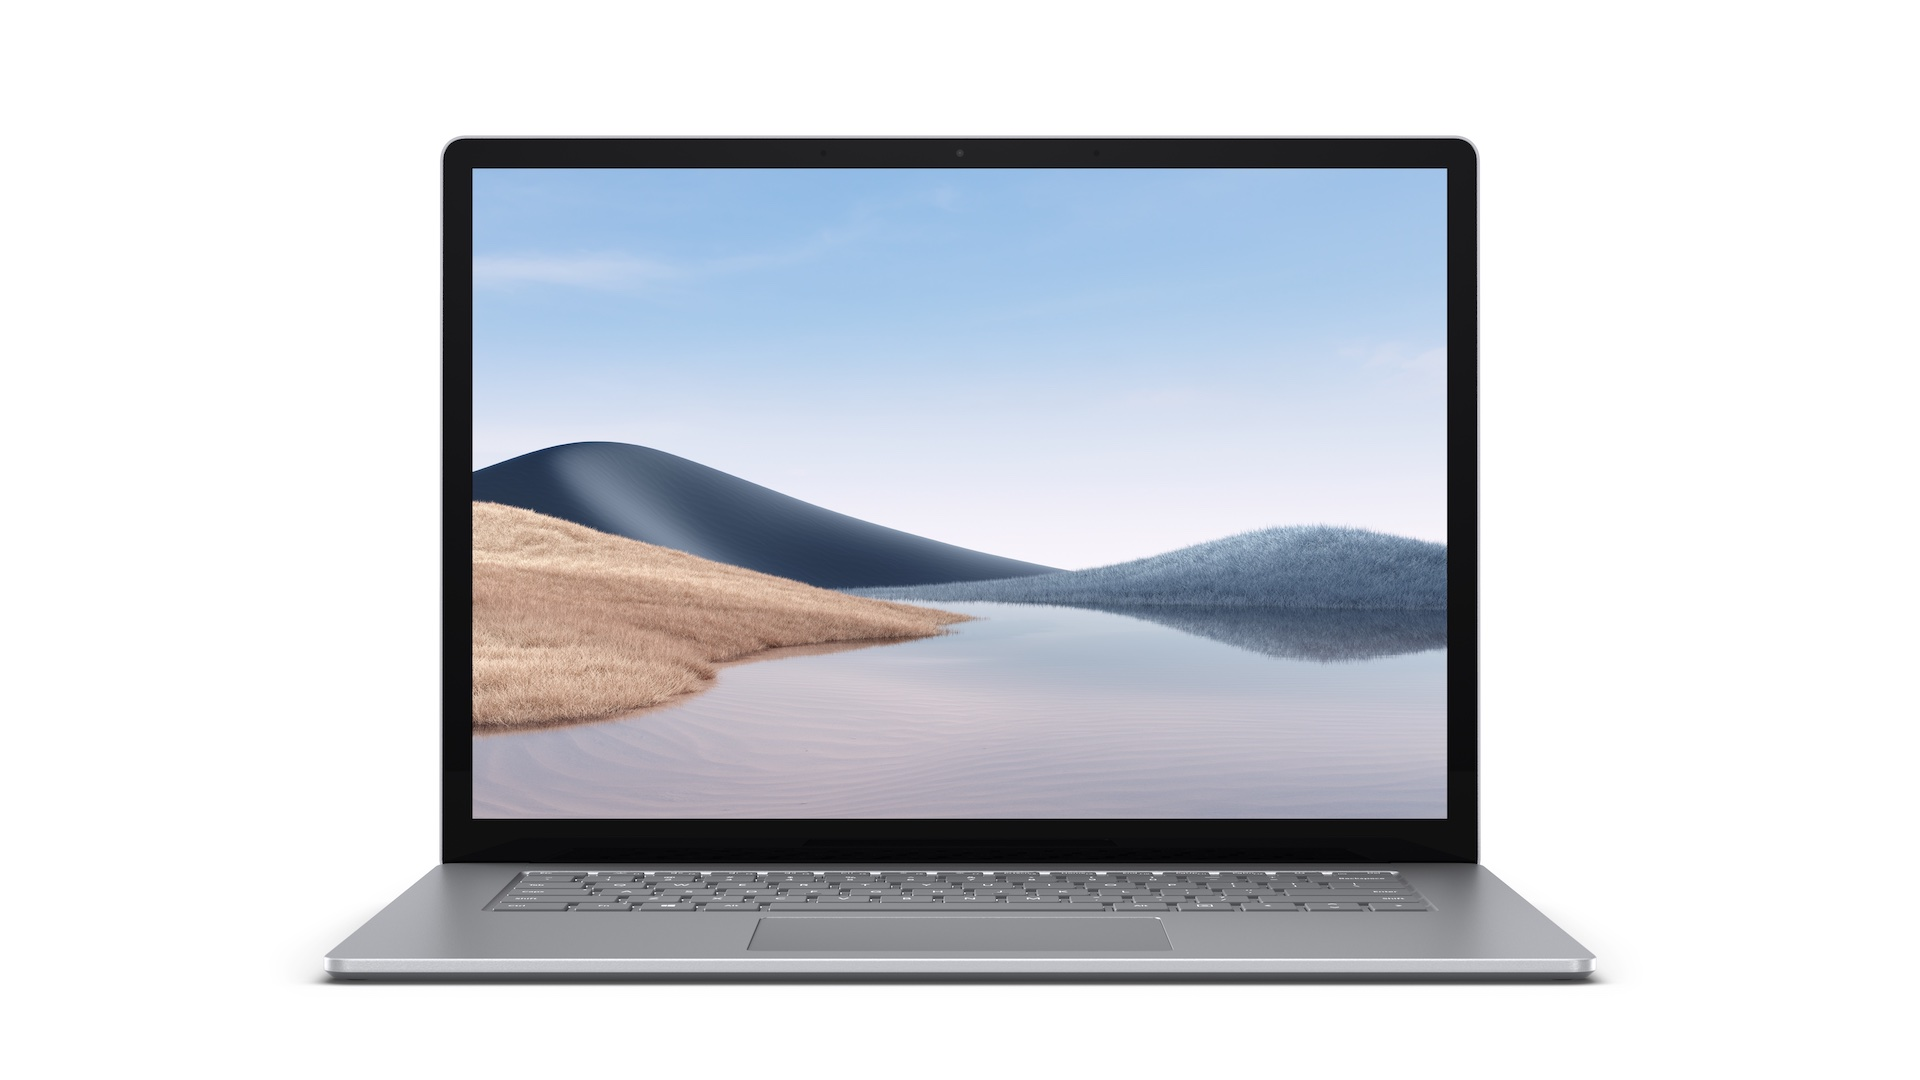 Microsoft Surface Laptop 4 - 15in / i7-1185G7 / 8GB / 256GB, Platinum; Commercial